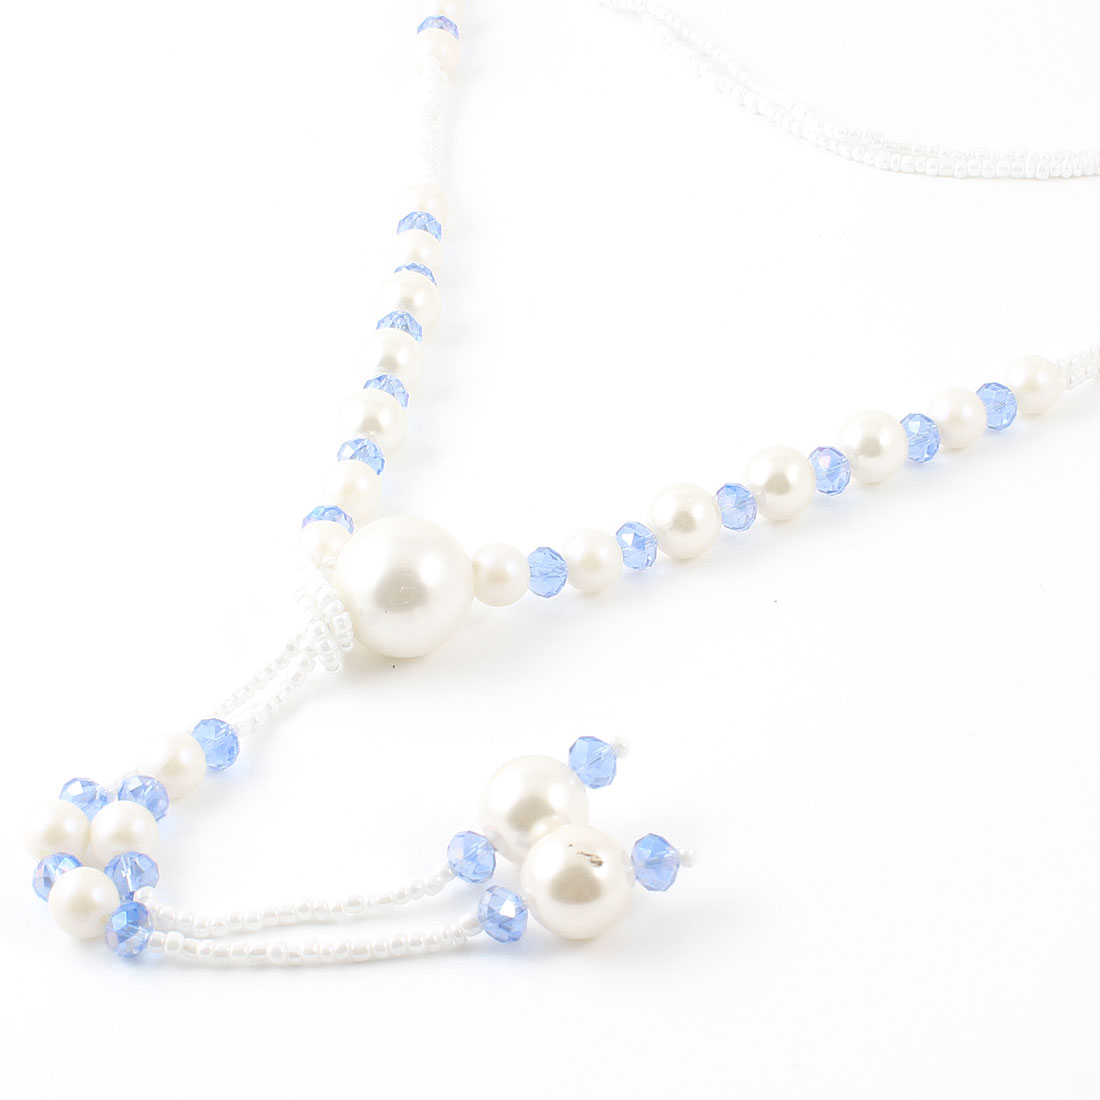 Plastic Crystal Detail Blue White Beads Dangle Sweater Chain Necklace for Woman